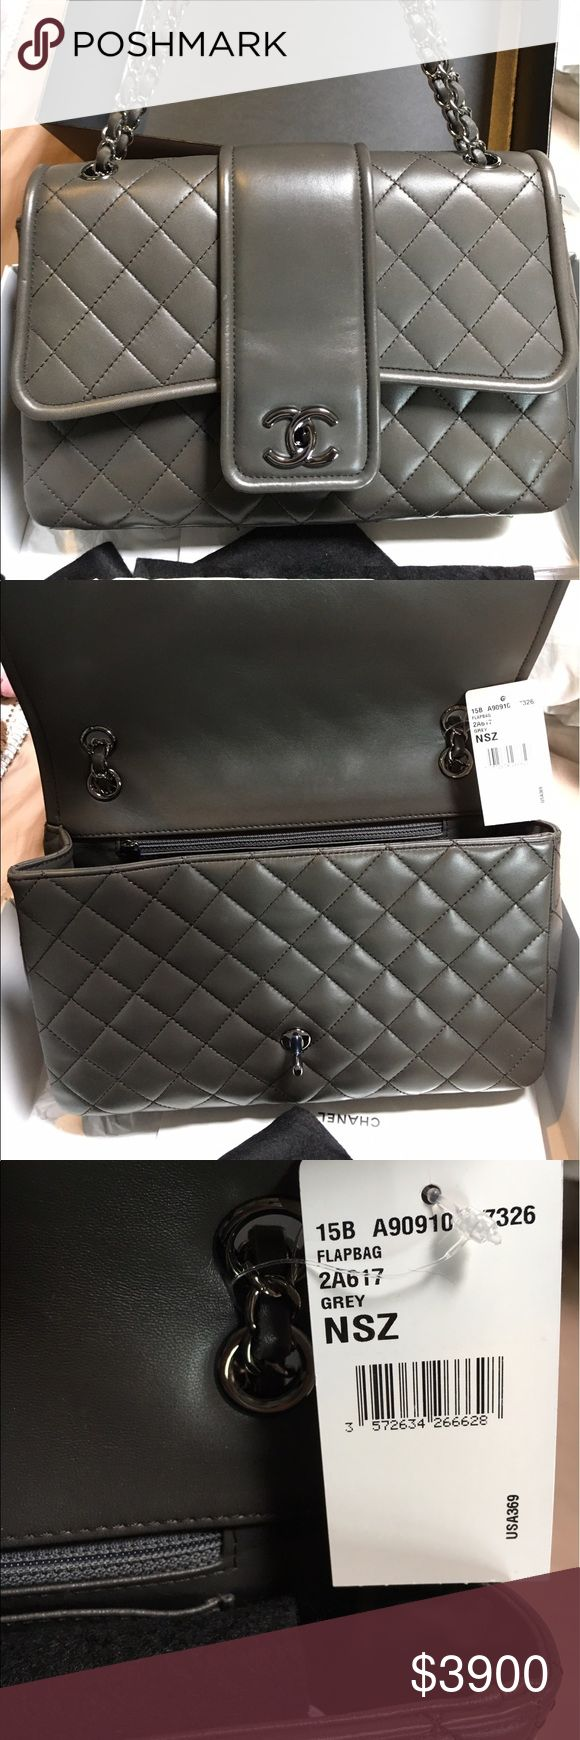 Chanel Flap bag. Never used Brand new with tags grey Chanel Flap bag. Never used. Comes with box, bag, authenticity card, and receipt. Bought from Chanel at Saks in St Louis. Price is firm. CHANEL Bags